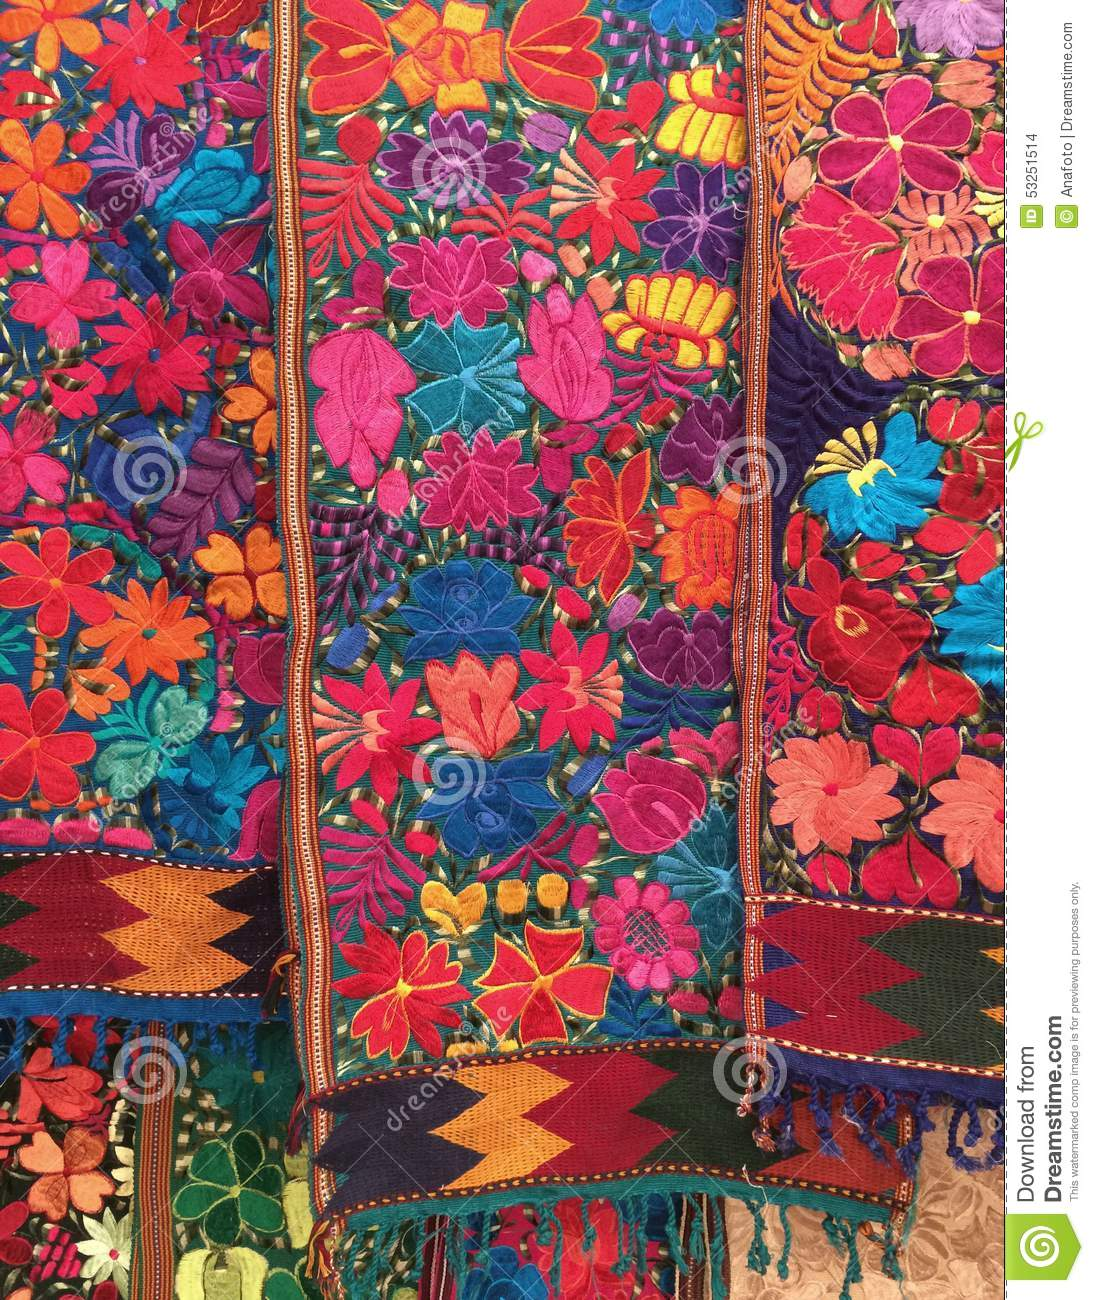 Mexican Table Runners Stock Photo - Image: 53251514